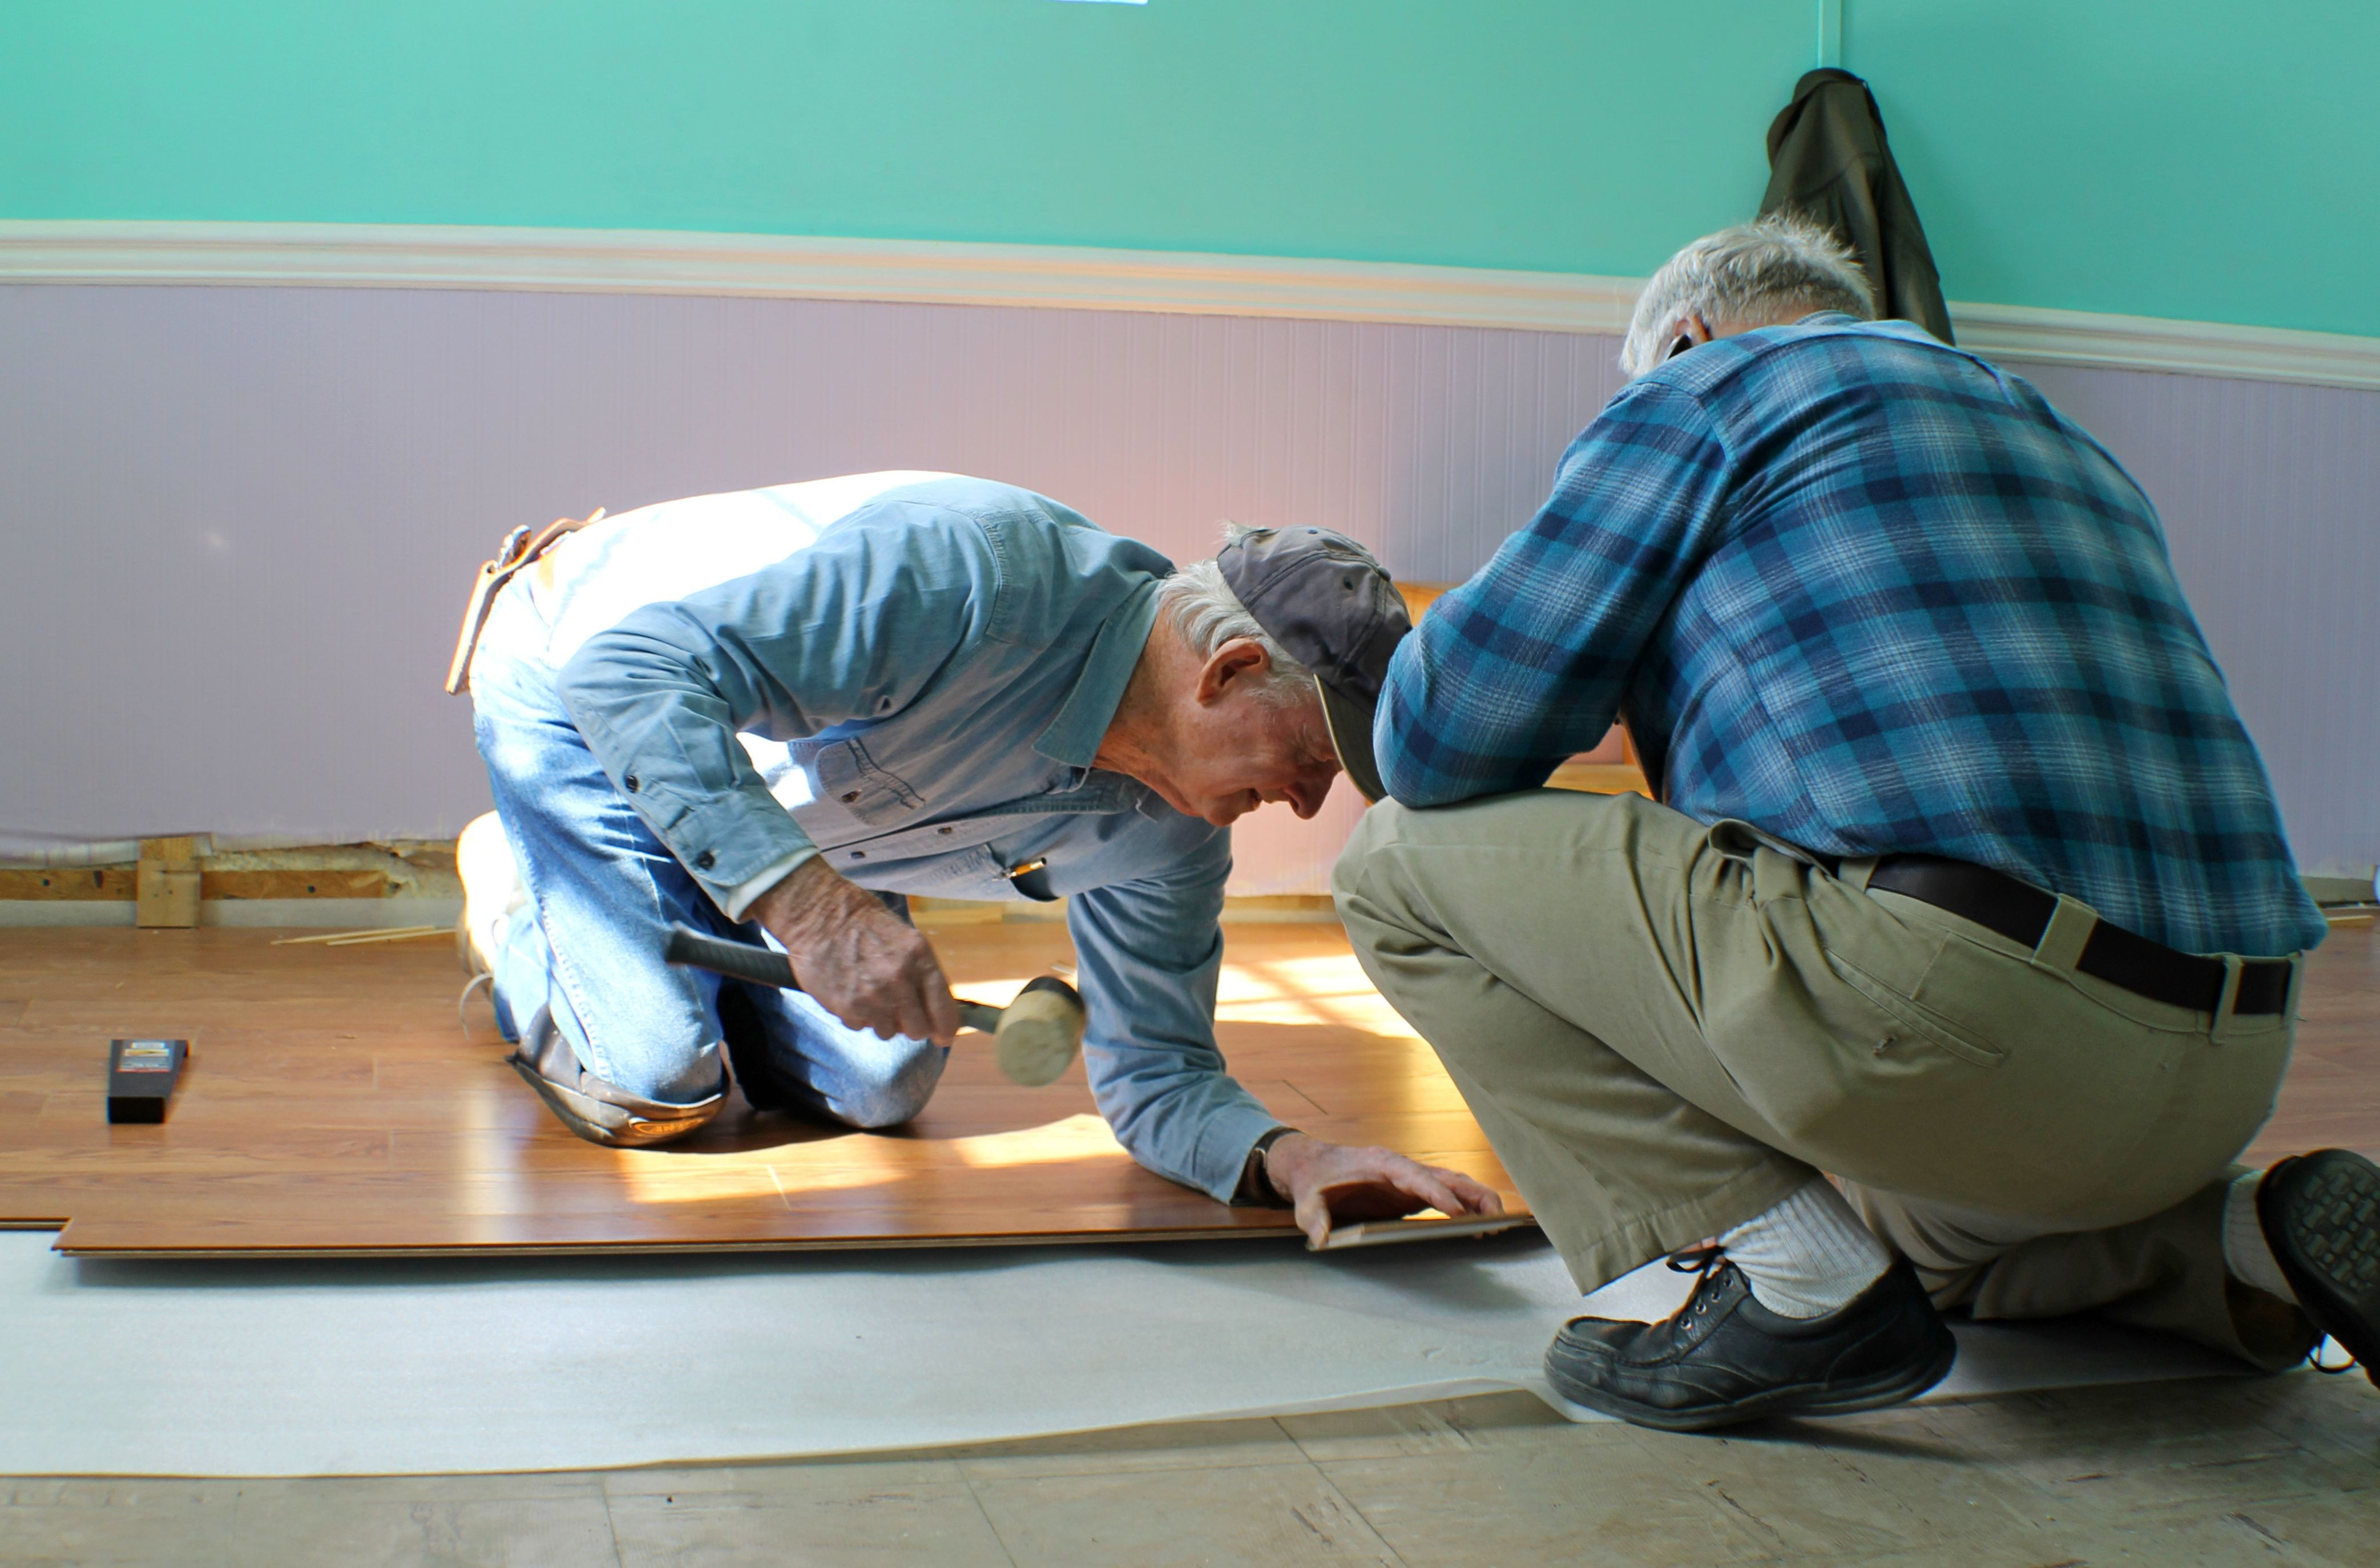 gluing hardwood floors on concrete slab of common flooring types currently used in renovation and building within laminate floor assembly setting tongue and groove 5ba27f2146e0fb00241f7302 jpg